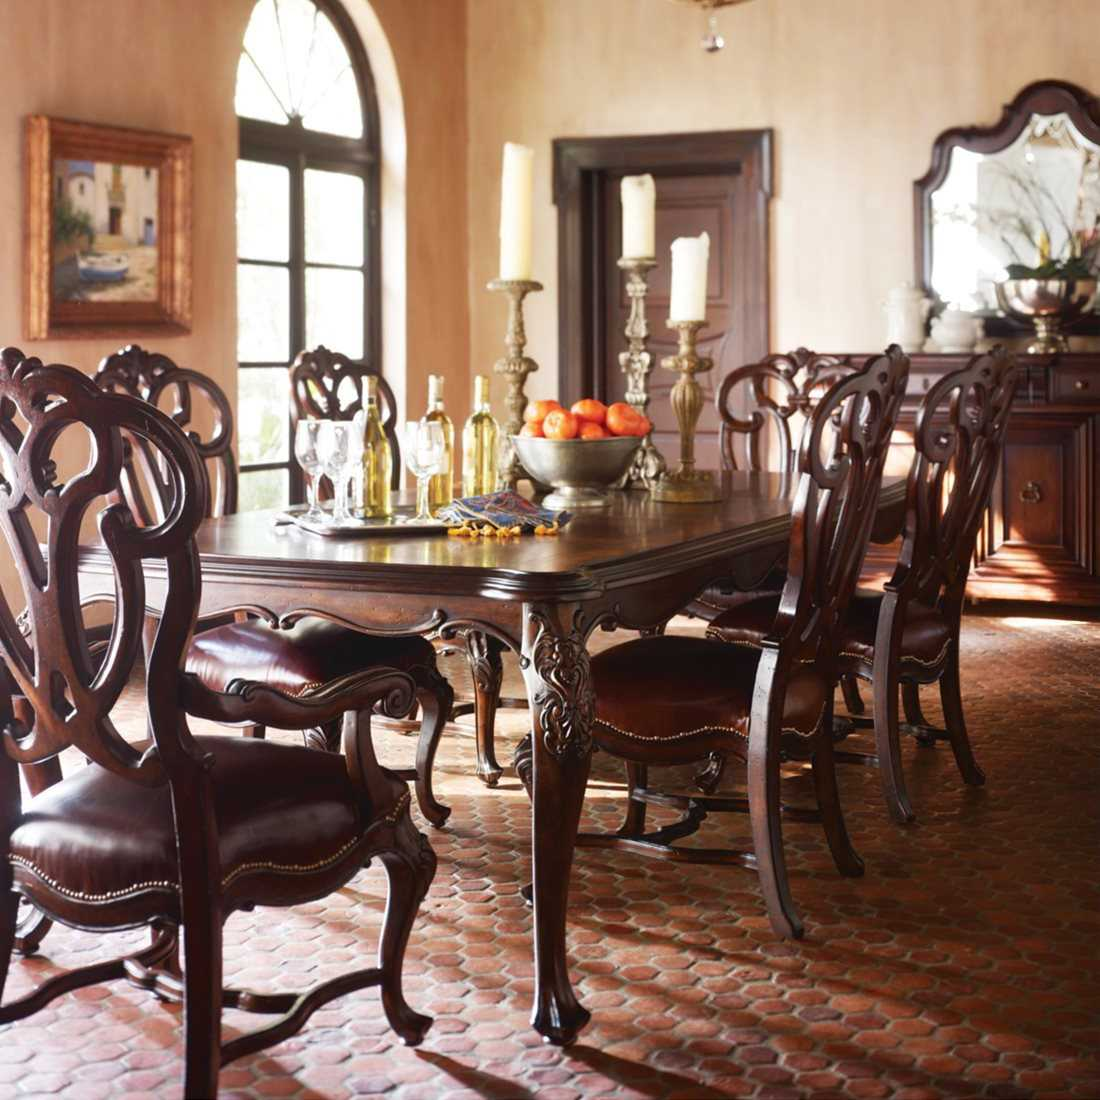 Stanley Dining Room Furniture: Stanley Furniture Costa Del Sol Dining Set